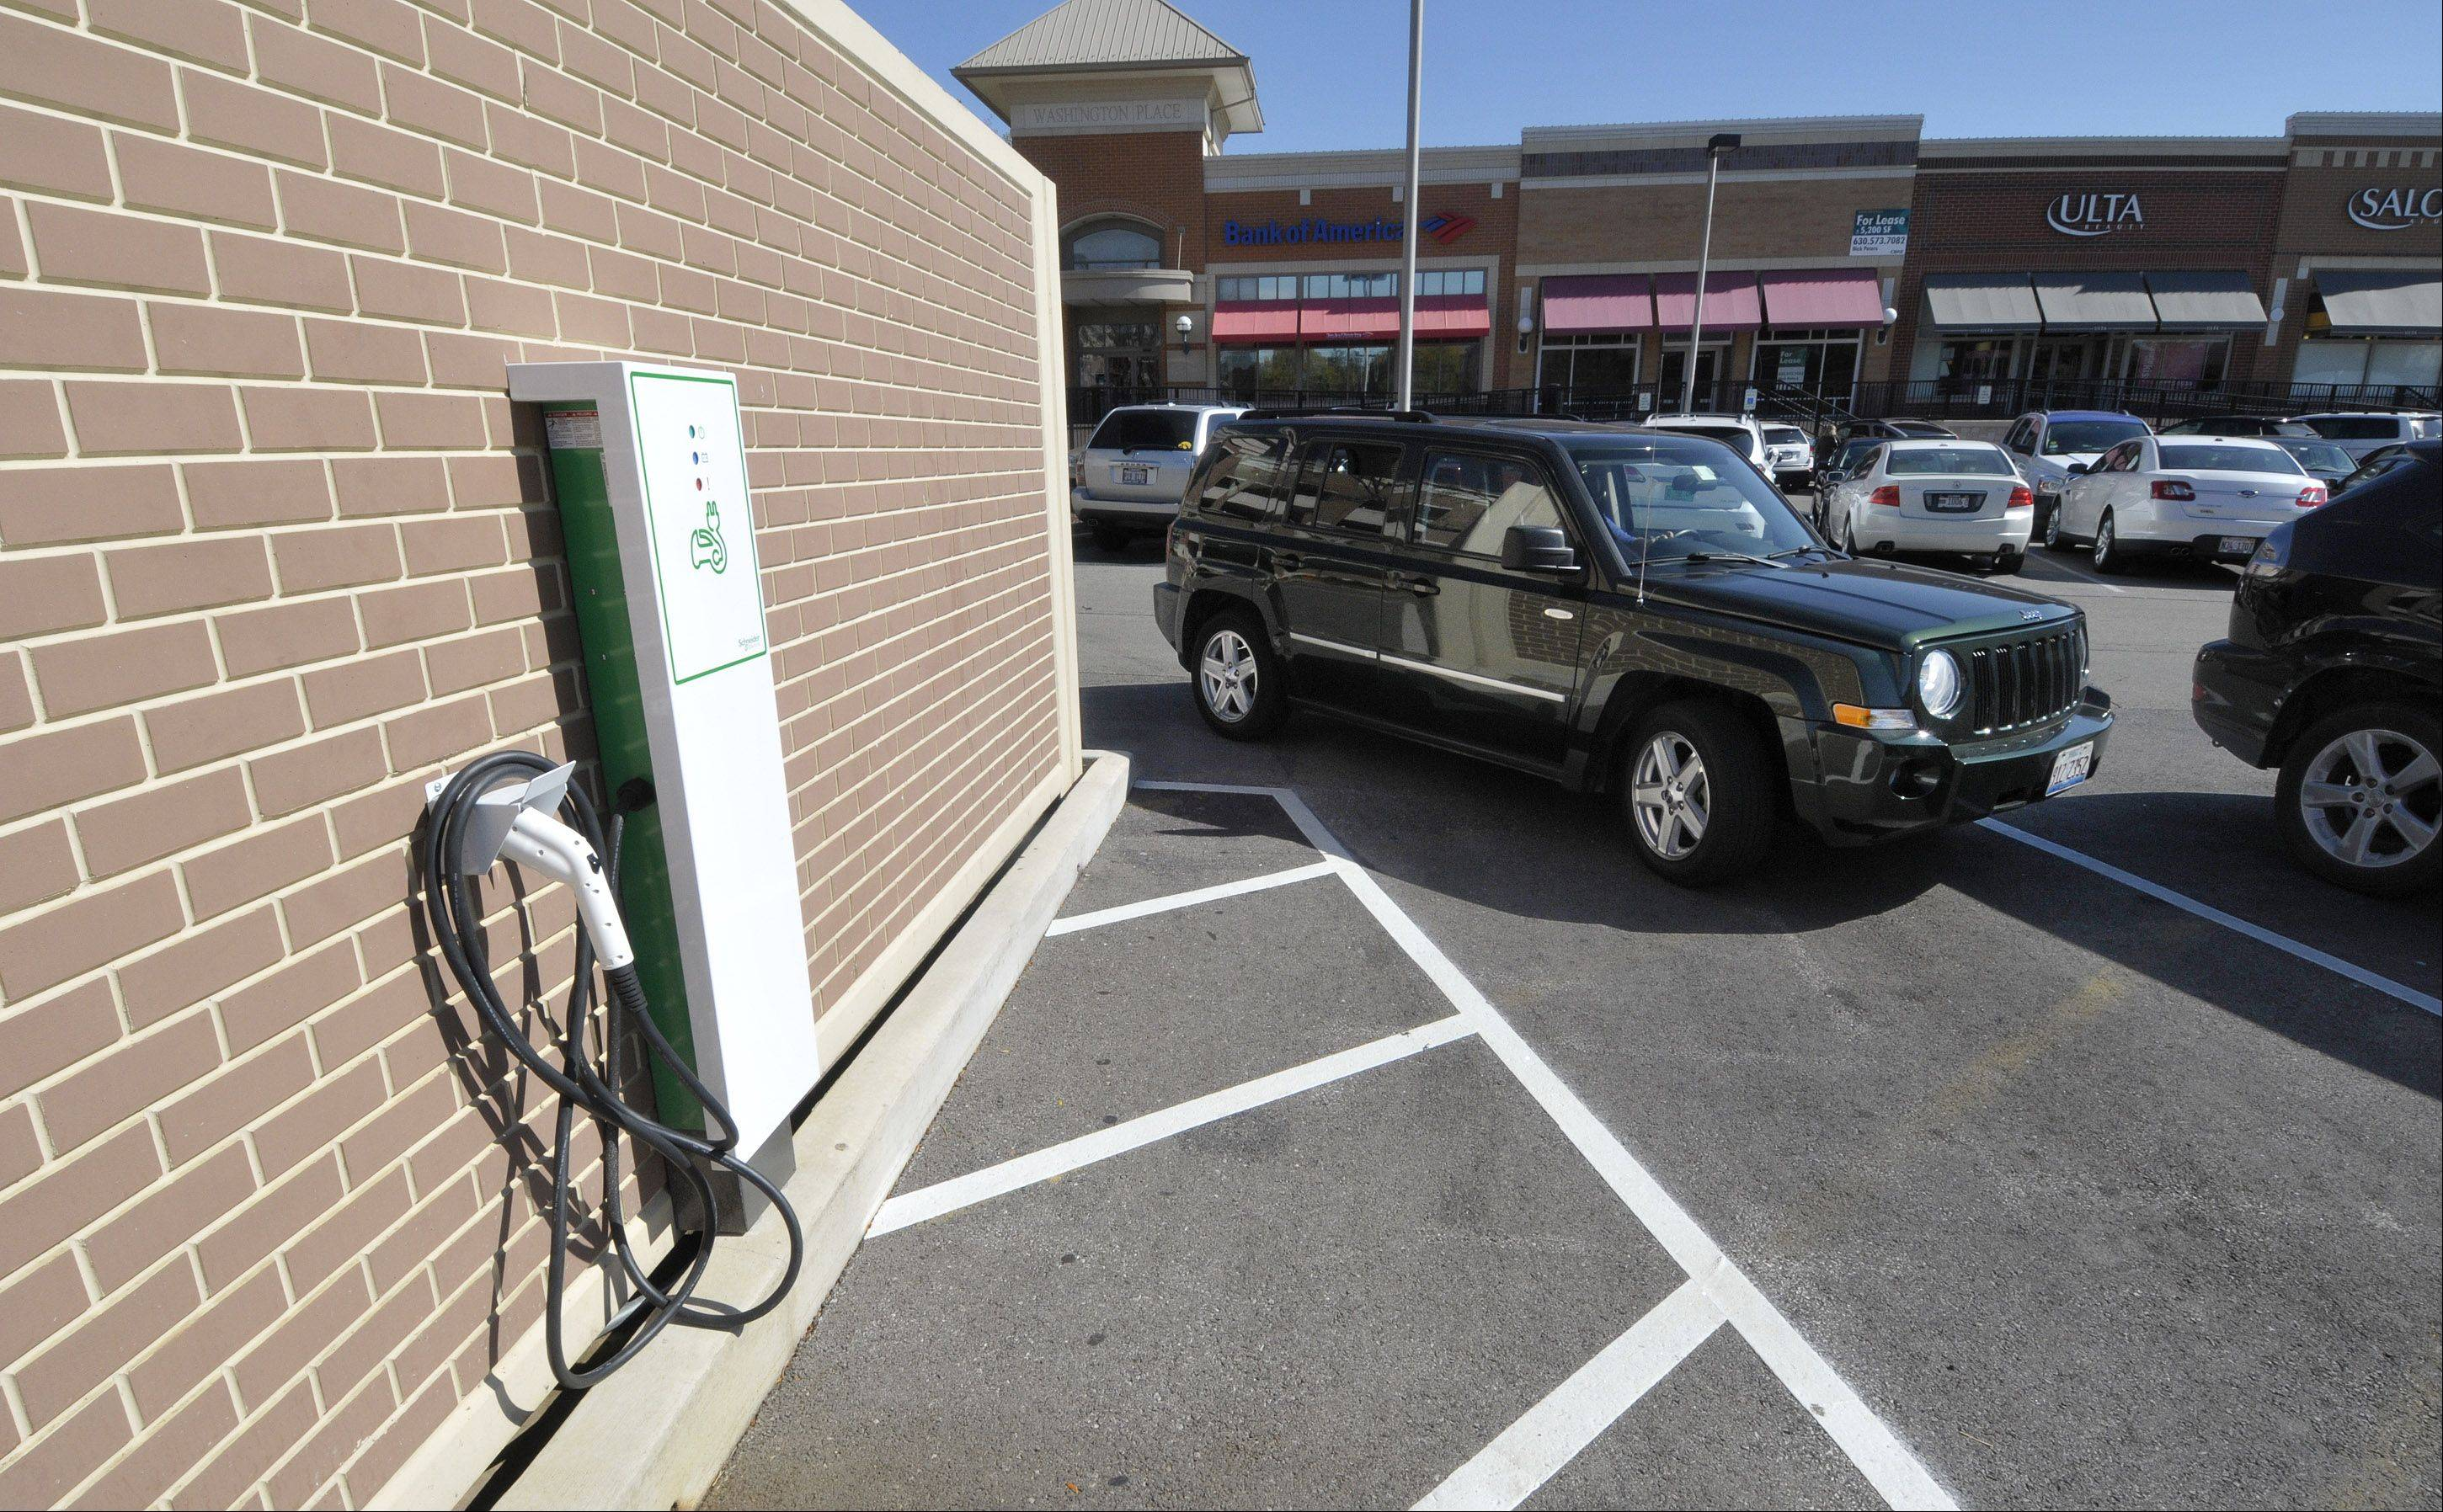 Naperville is expanding the number of charging stations it offers for electric cars, but also plans to start charging a fee for their use.